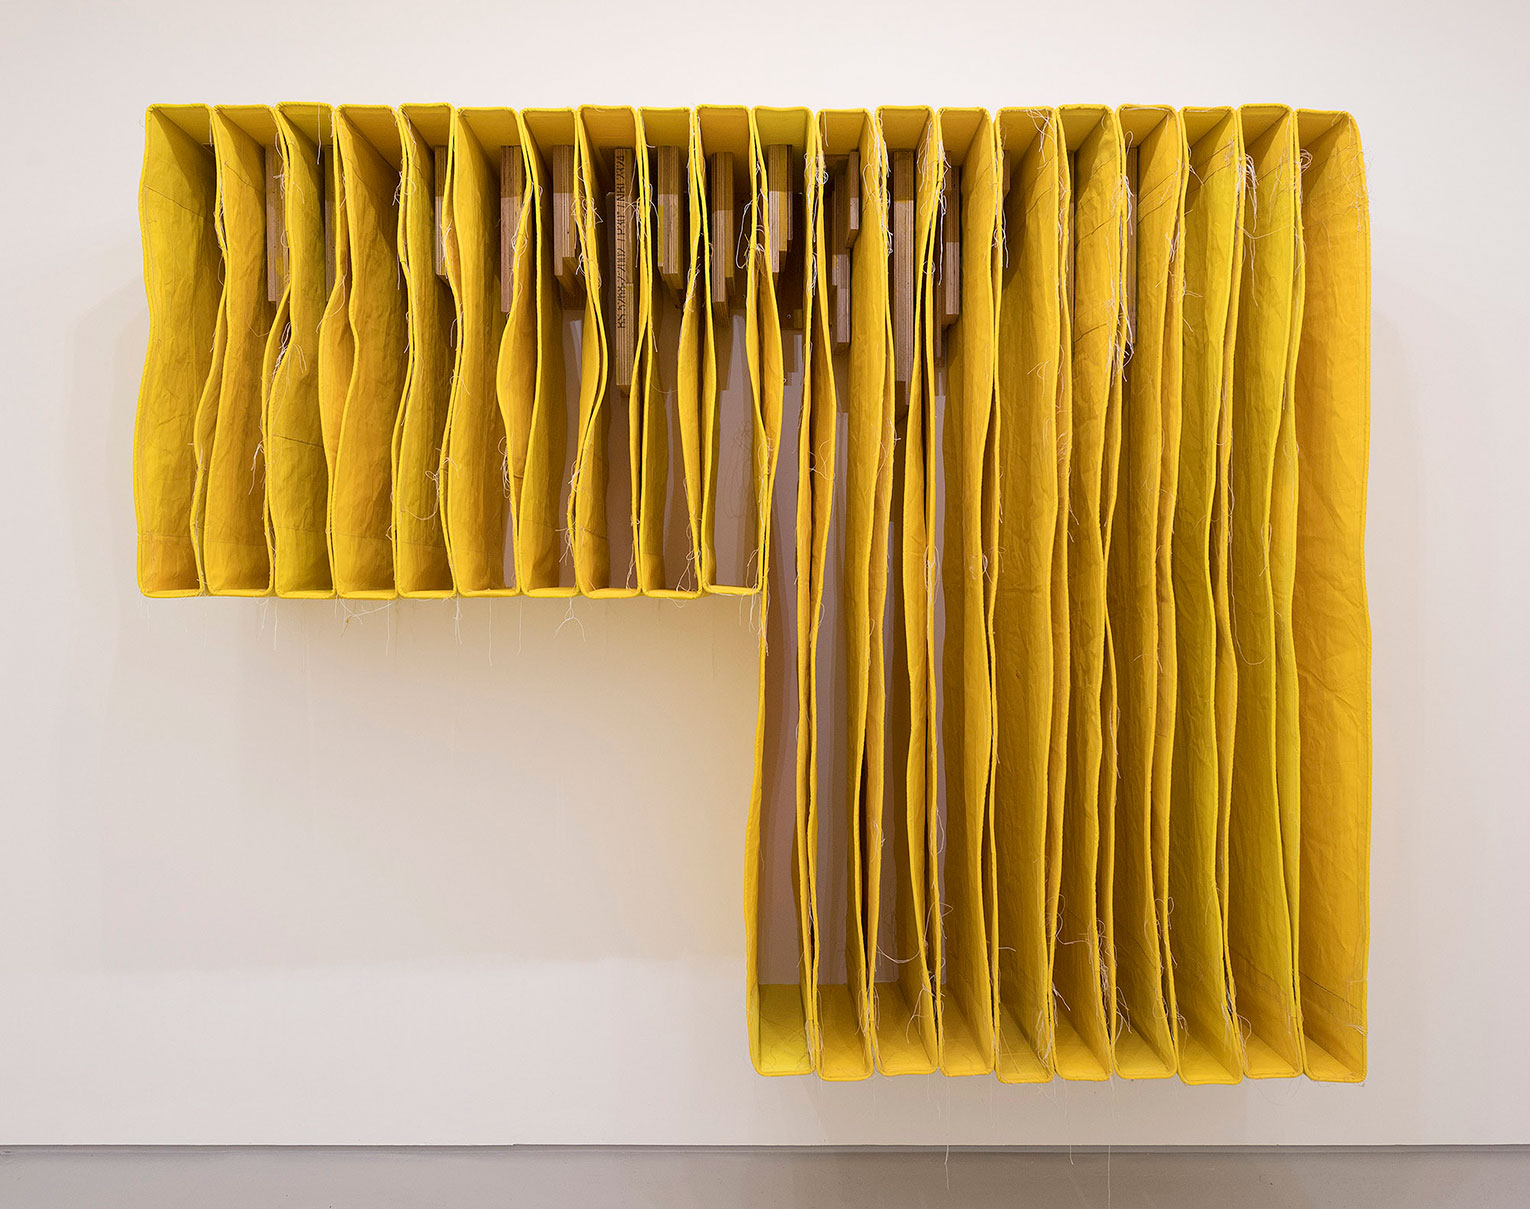 <b>Title: </b>Undercut Yellow Wallspine<br /><b>Year: </b>2017<br /><b>Medium: </b>Canvas, distemper, thread and pencil<br /><b>Size: </b>200 x 250 x 56 cm